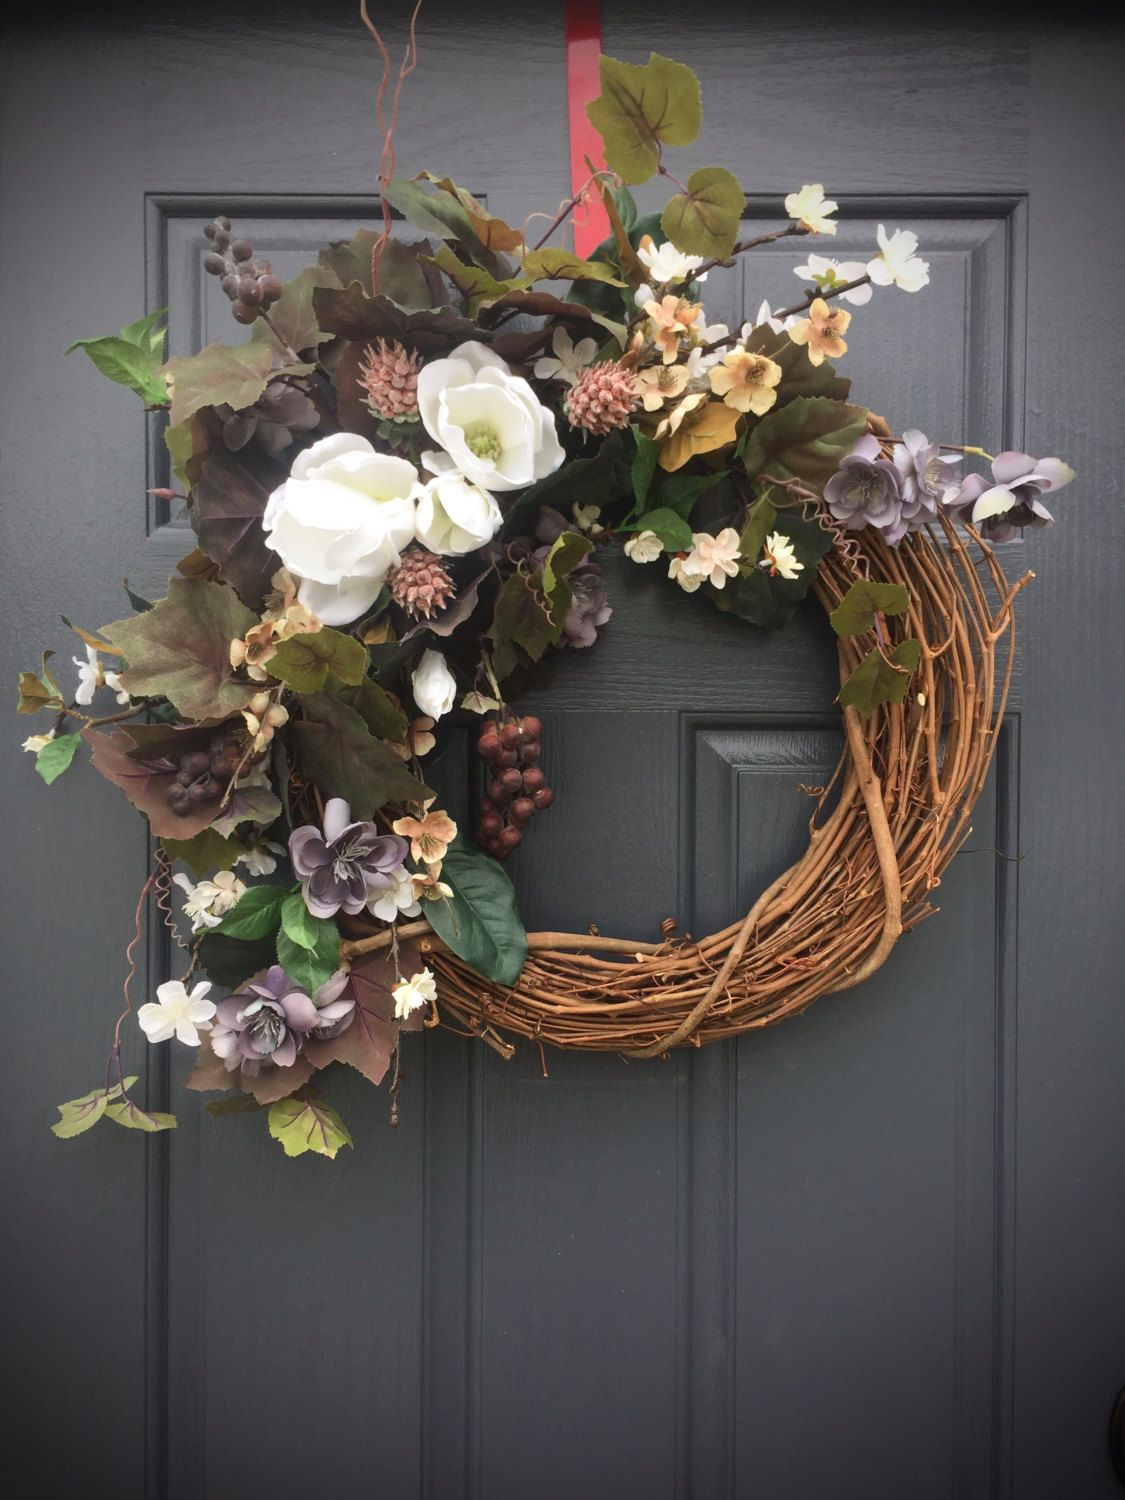 Magnolia Wreath, Grape Wreath, Year Round Wreaths, All Season Door Wreath,  Grapevine Decor, Year Round Door Wreath, Magnolia Flowers